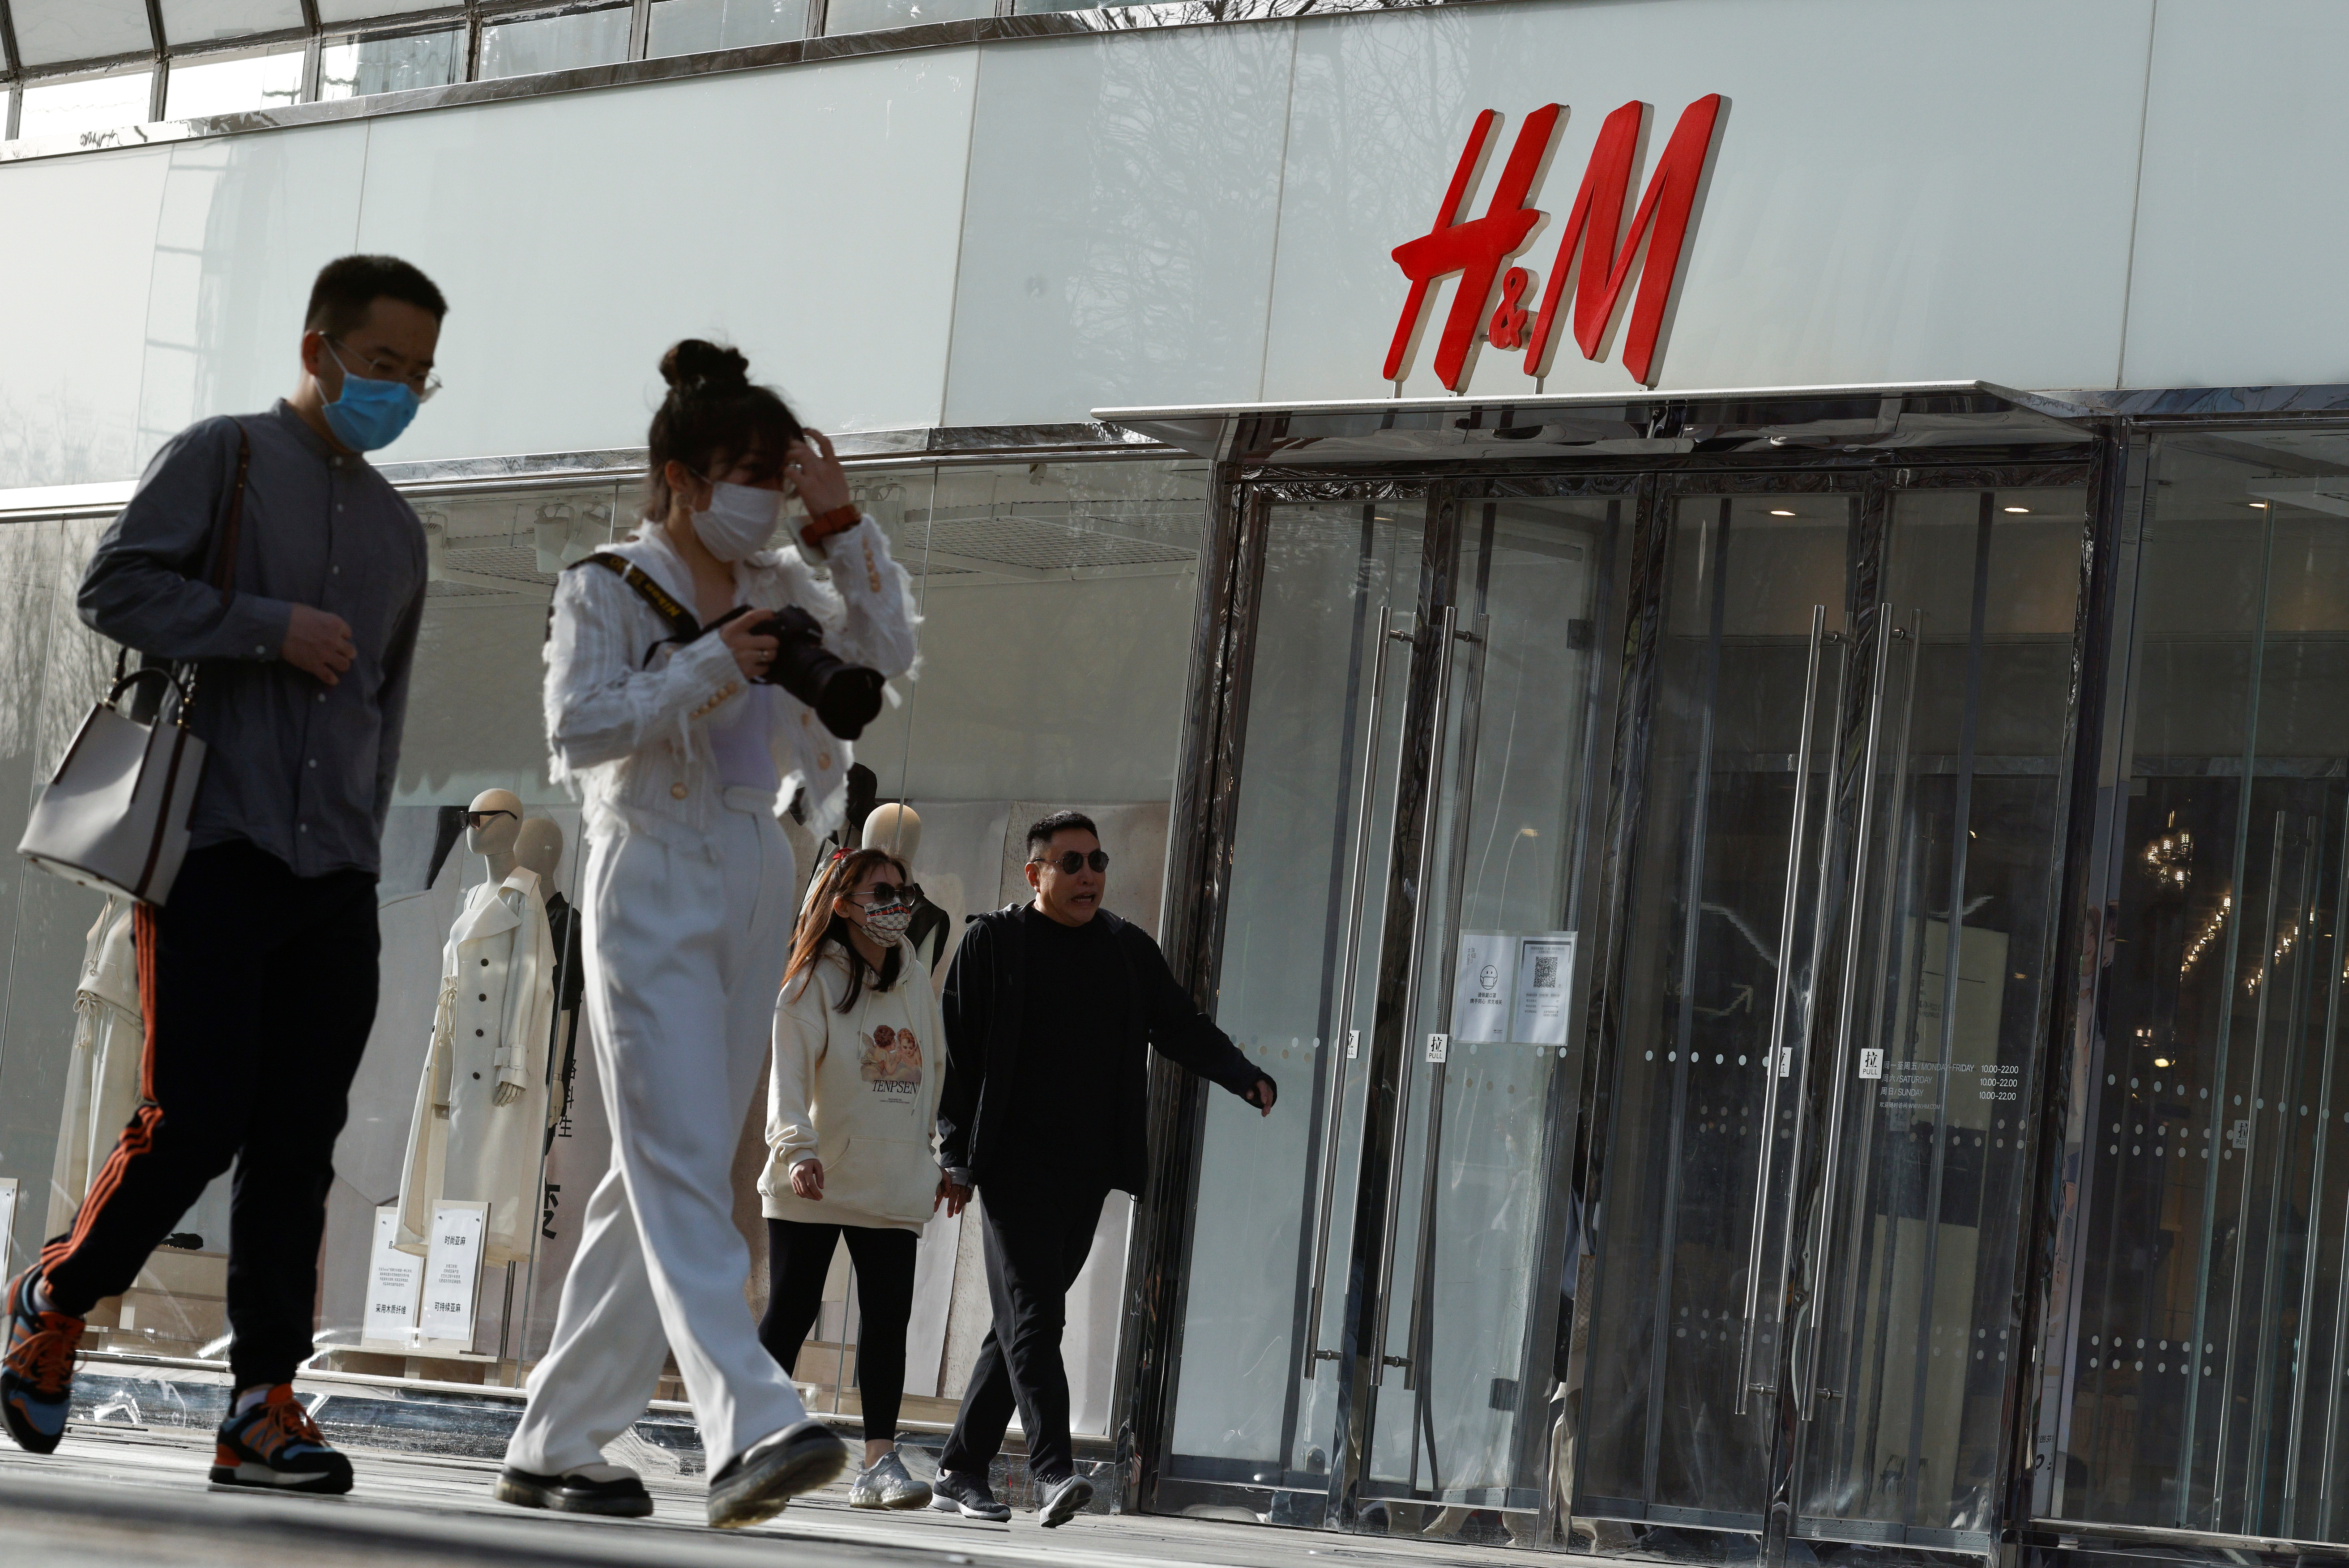 People walk past an H&M store in a shopping area in Beijing, China, March 28, 2021. REUTERS/Thomas Peter